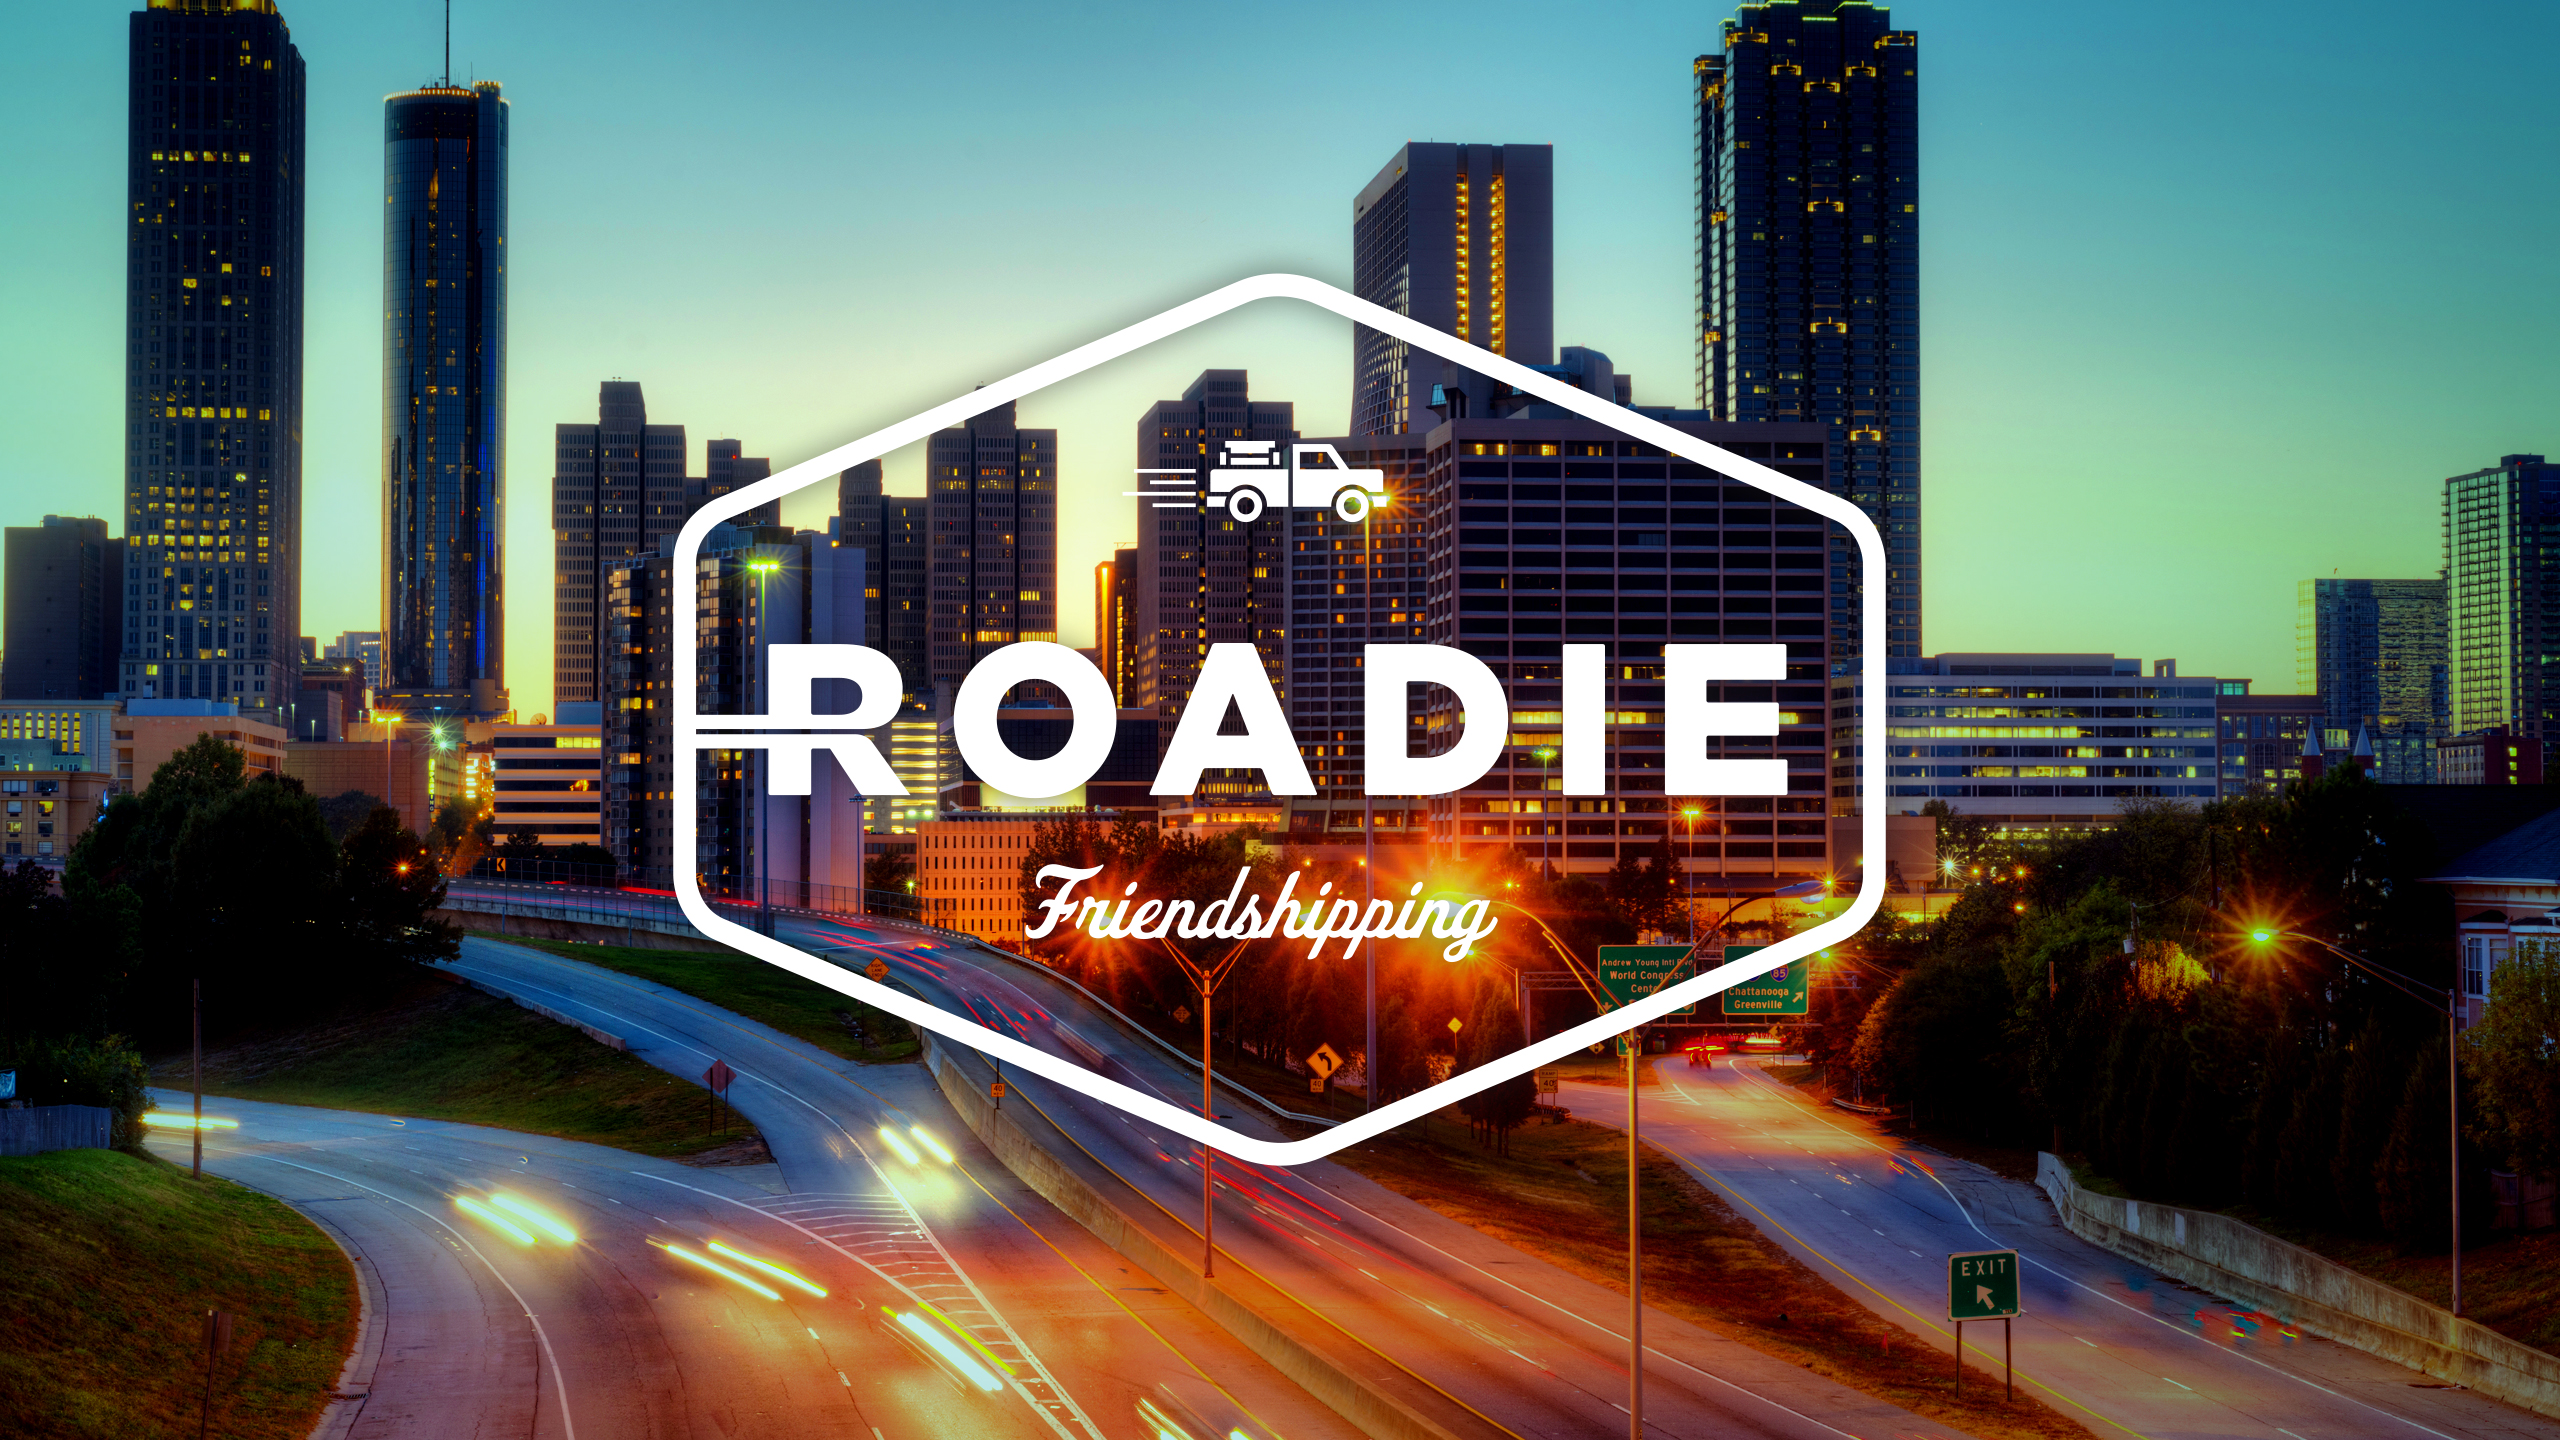 UPS Capital to provide insurance solution for Roadie shipments